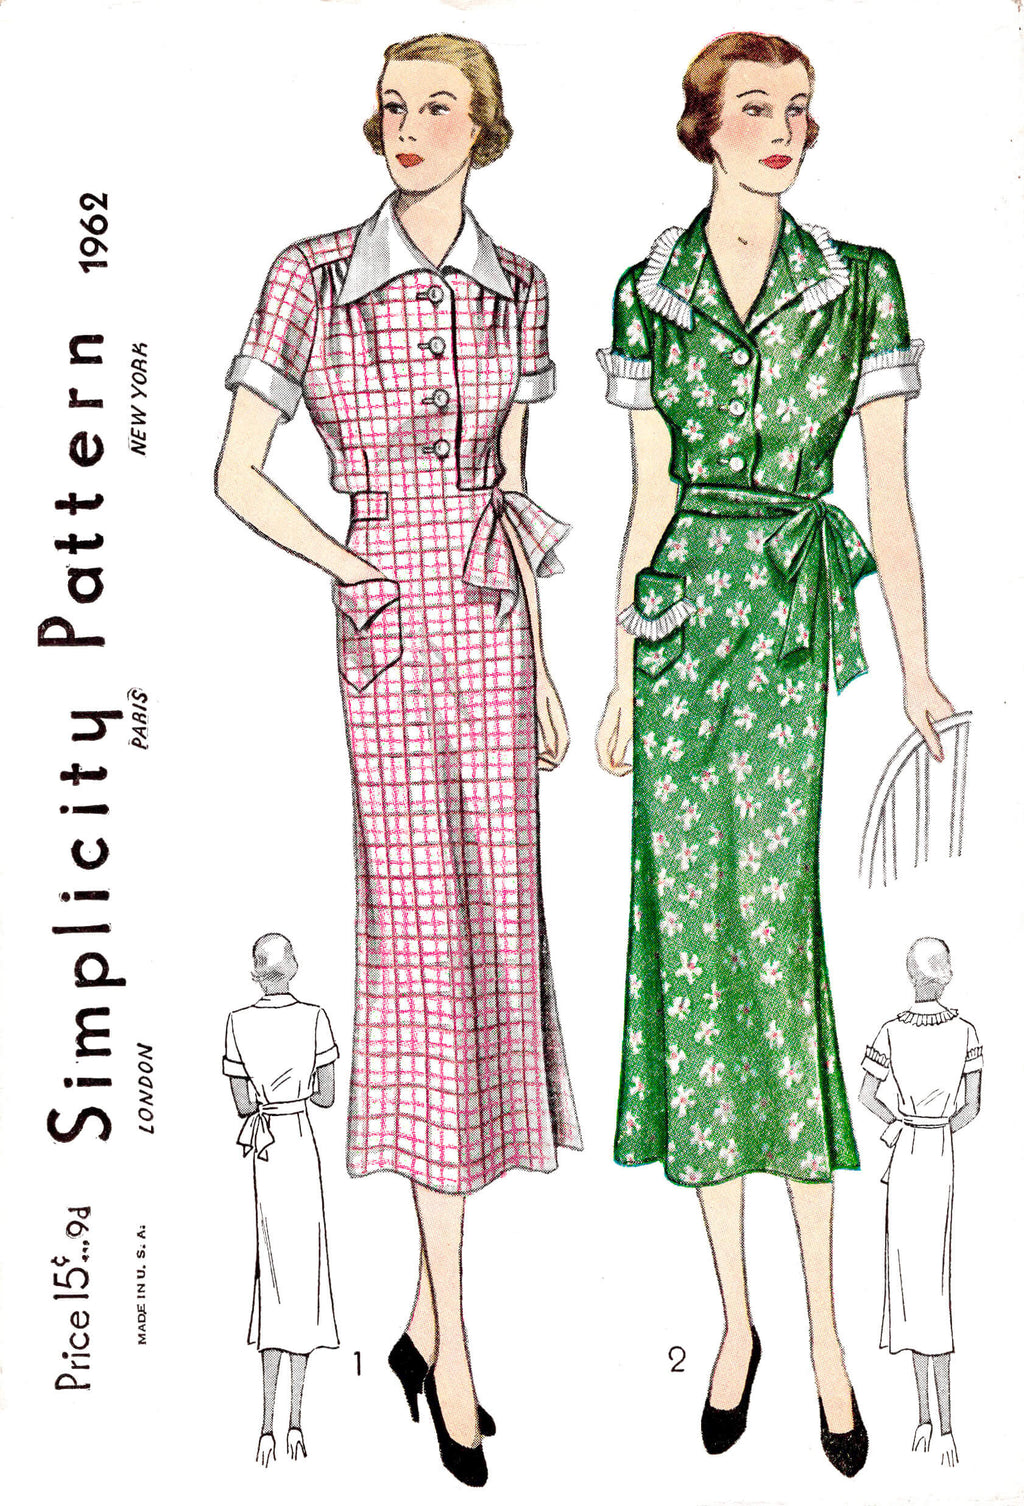 1930s 30s apron dress Simplicity 1962 work dress wrap skirt vintage sewing pattern reproduction